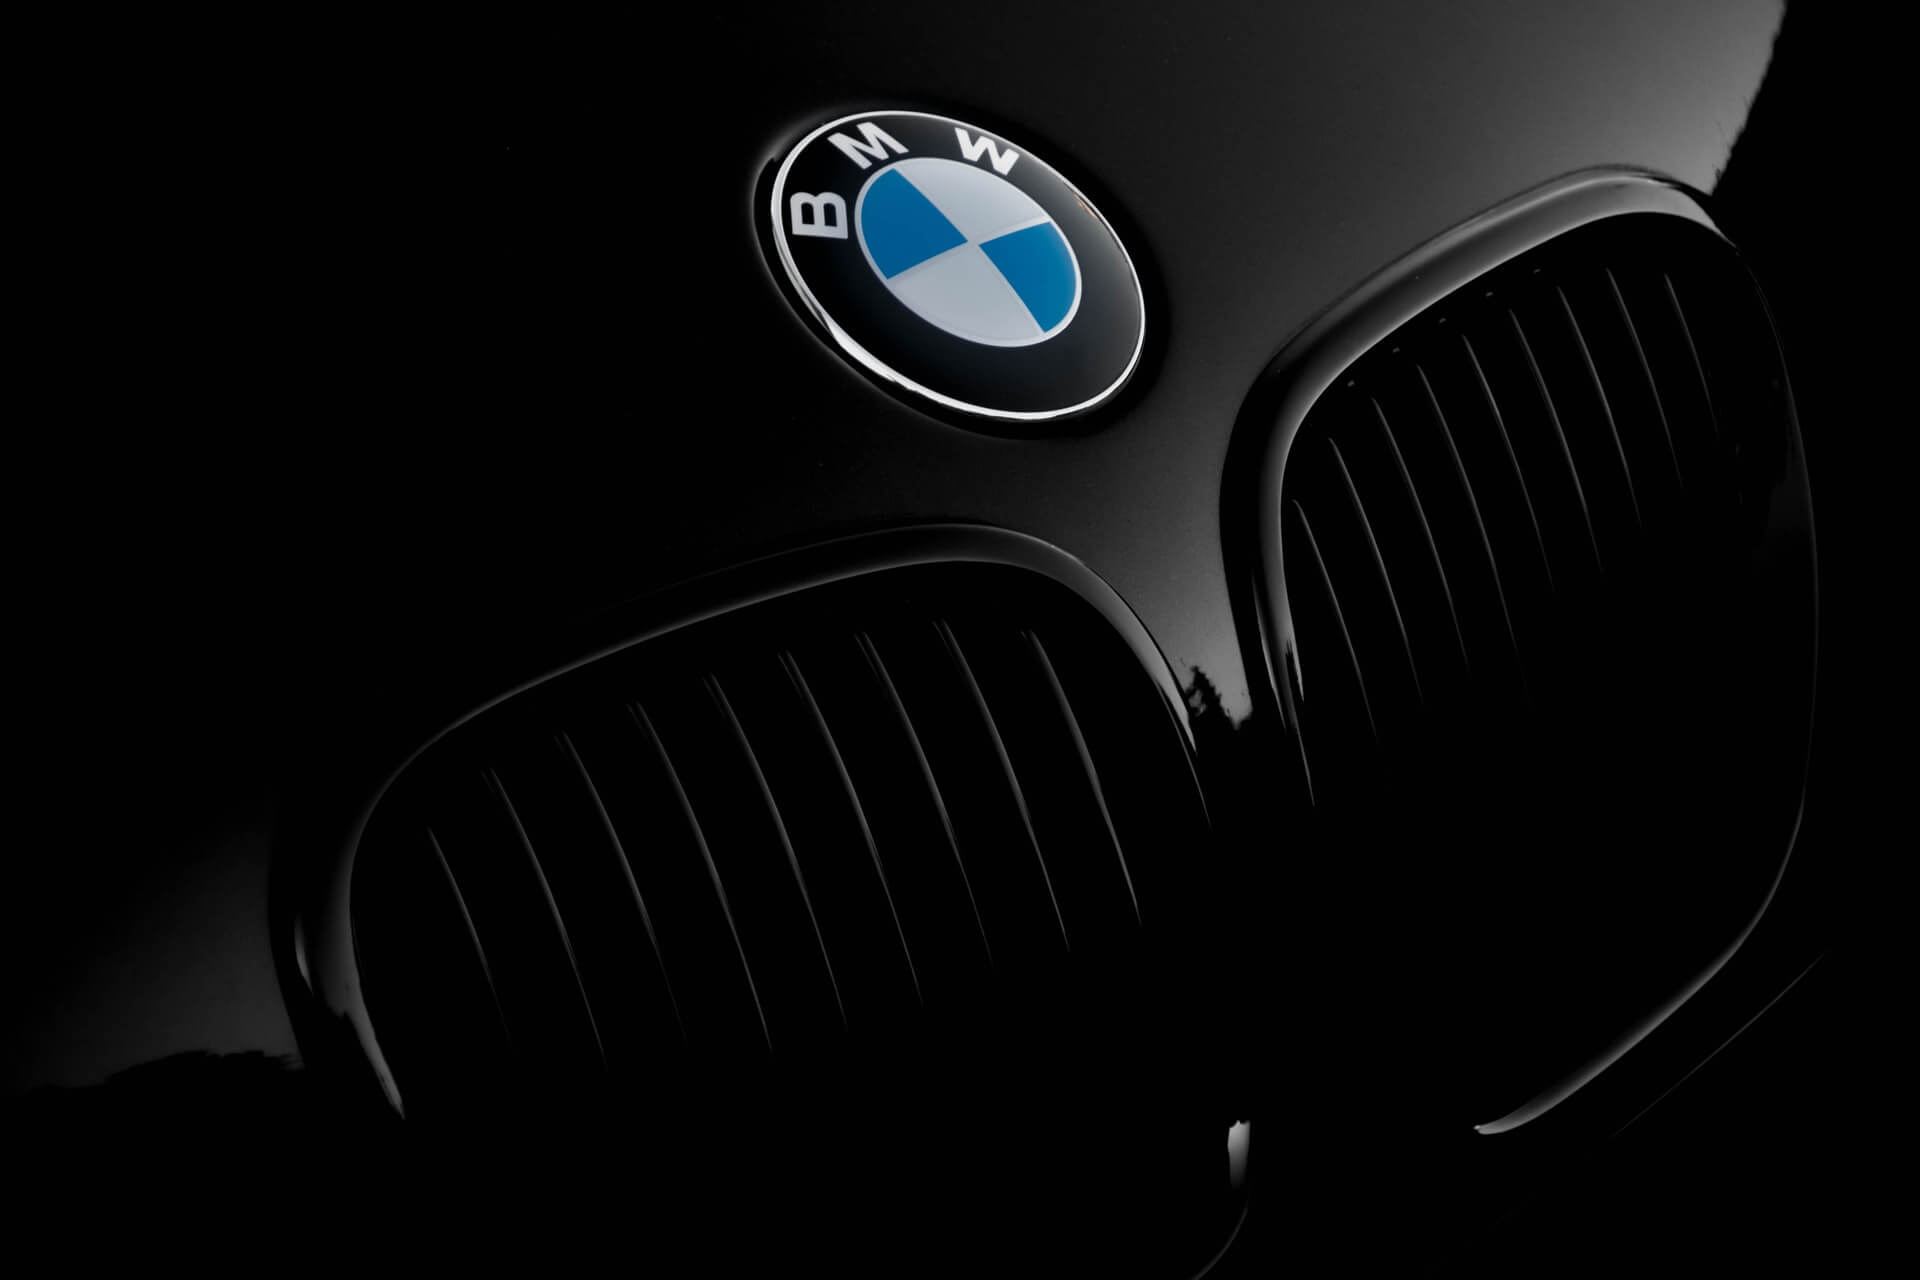 Greek Mythology behind BMW Logo